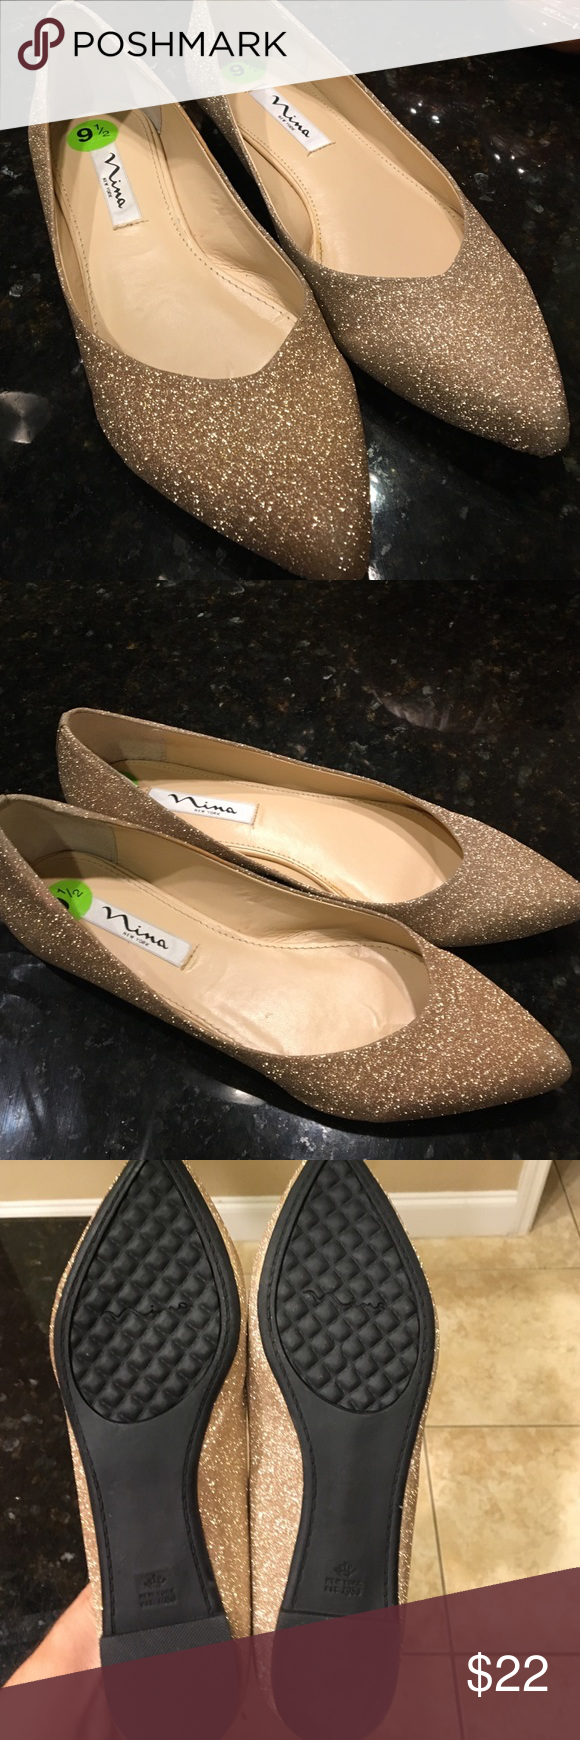 Gold Glitter Nina Flats Sz 9.5 NWOT Ugh these Nina flats are simply stunning! Perfect for day or night, they will make your Fall (and all season) outfits just POP! NWOT and against my better judgement, I bought them slightly too big 😩 . My loss is your gain! No scratches, scuffs. New condition. Don't forget I am a super fast shipper and I discount for bundles! Comes from a smoke free pet free home. Nina Shoes Flats & Loafers